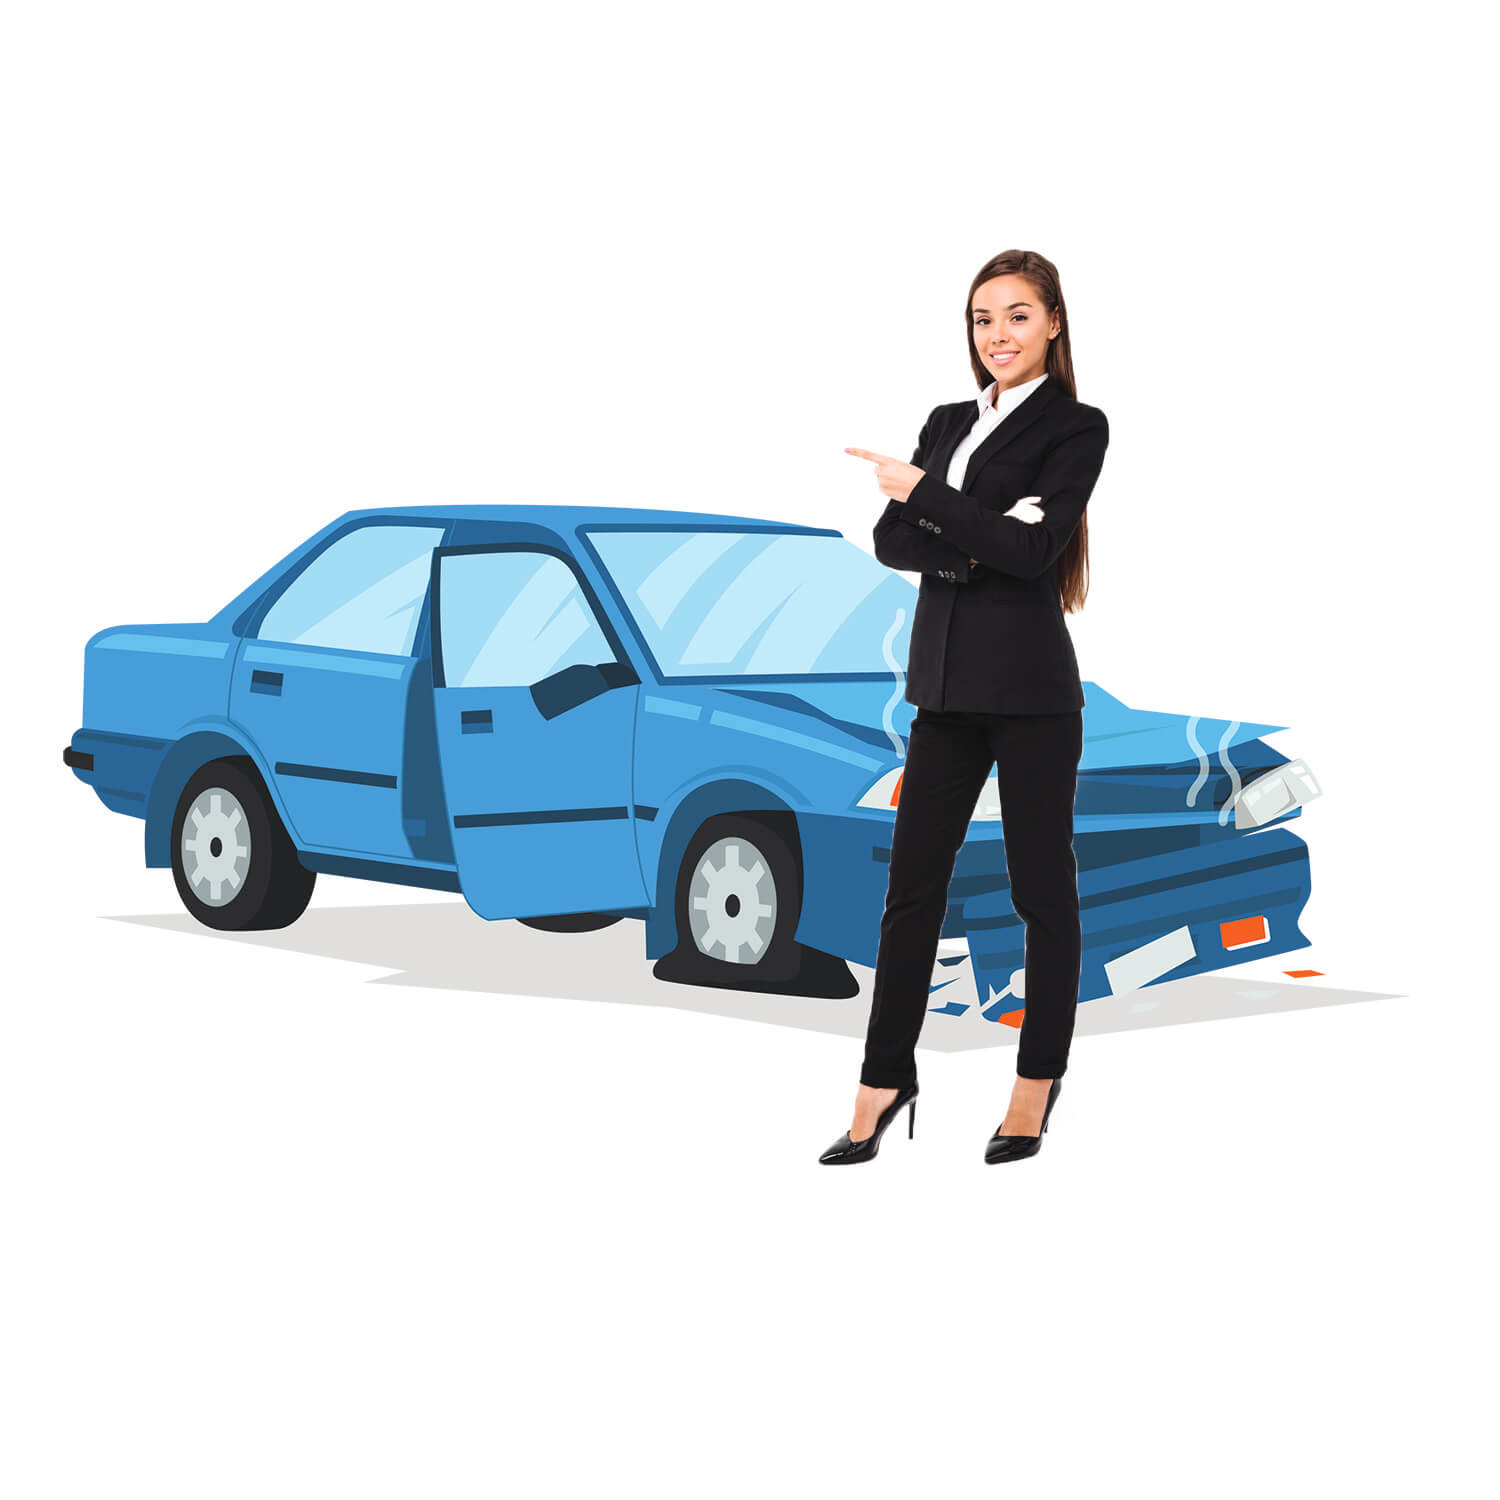 woman with totaled car in the background